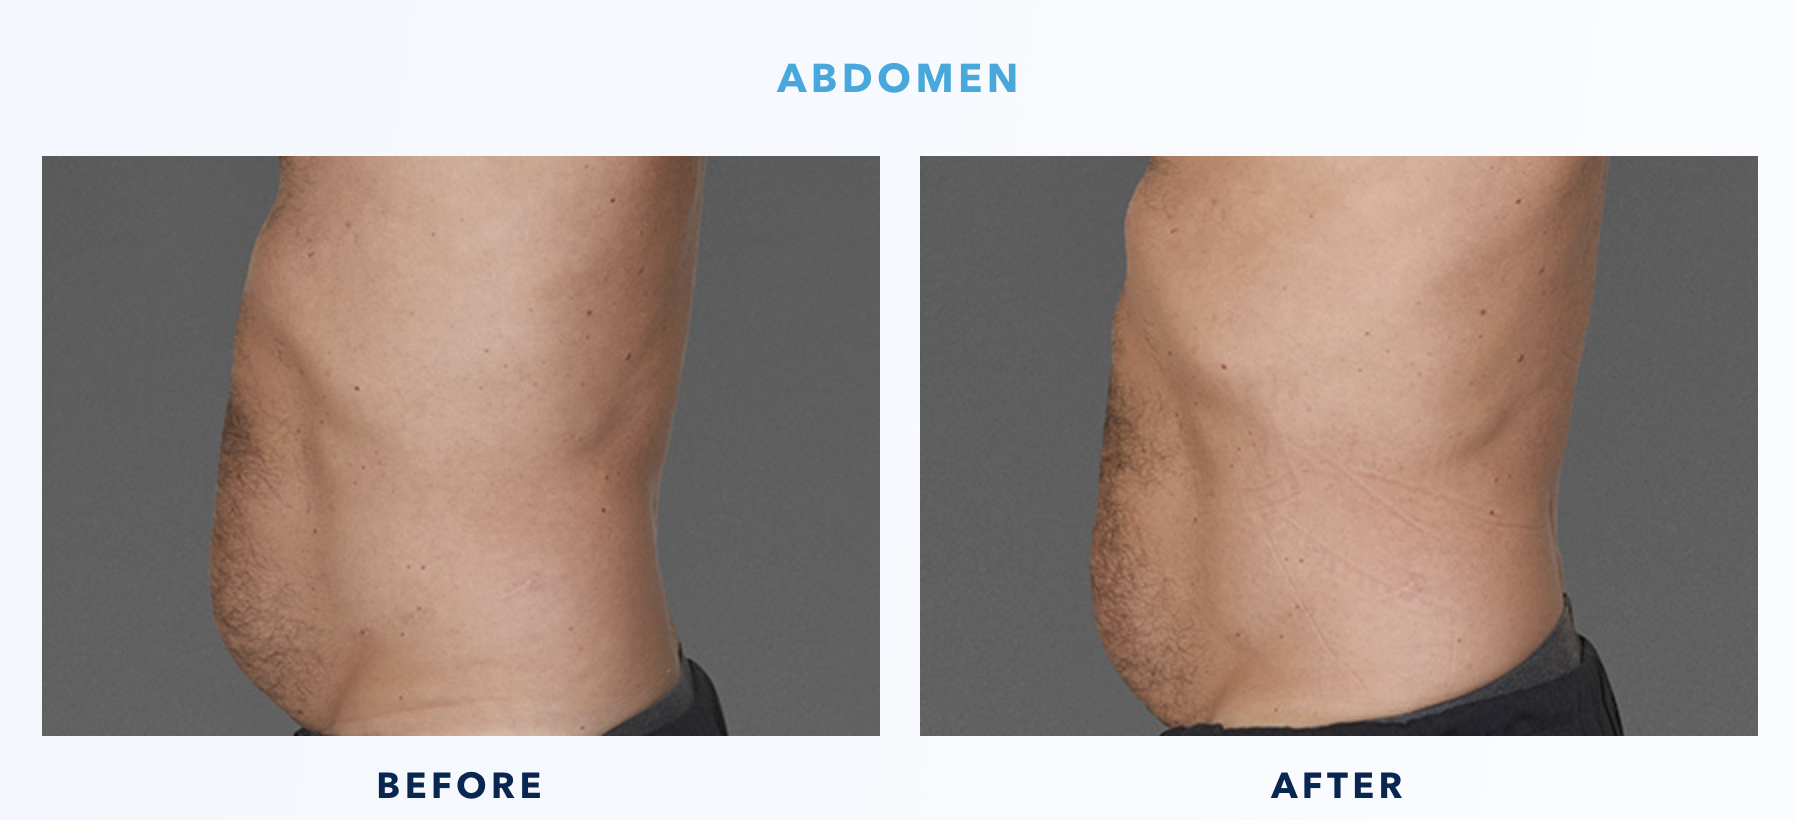 Cooltone Before & After Abdomen Male 2-2